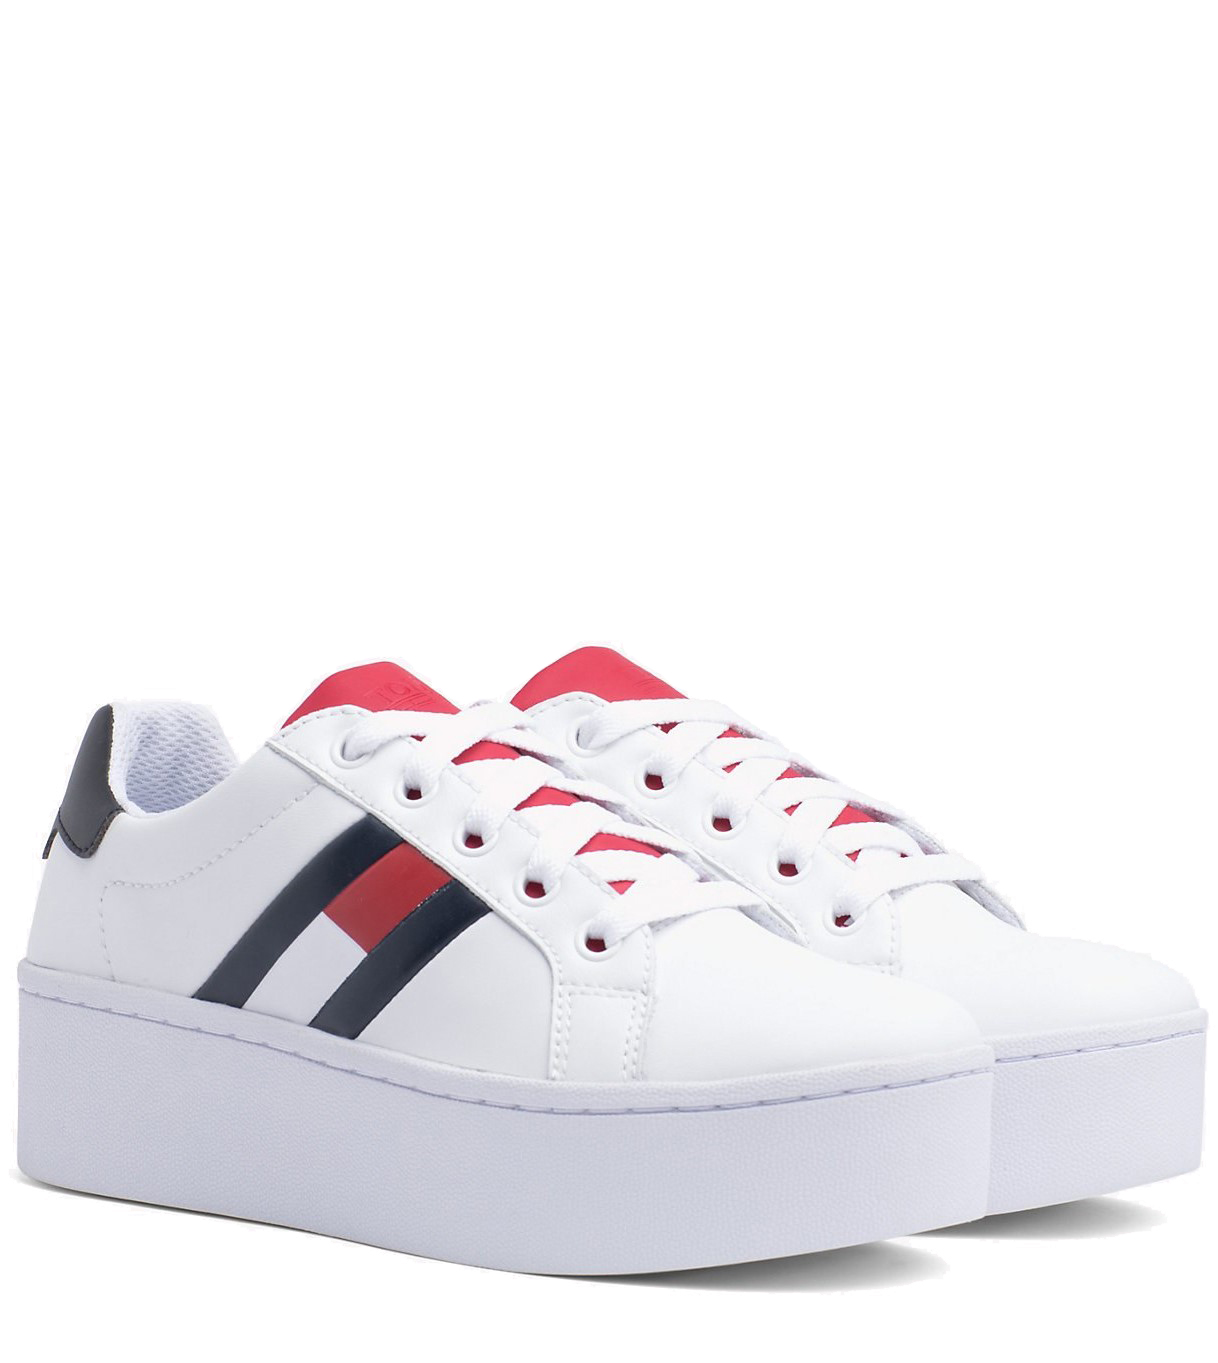 Tommy Hilfiger white sneakers with